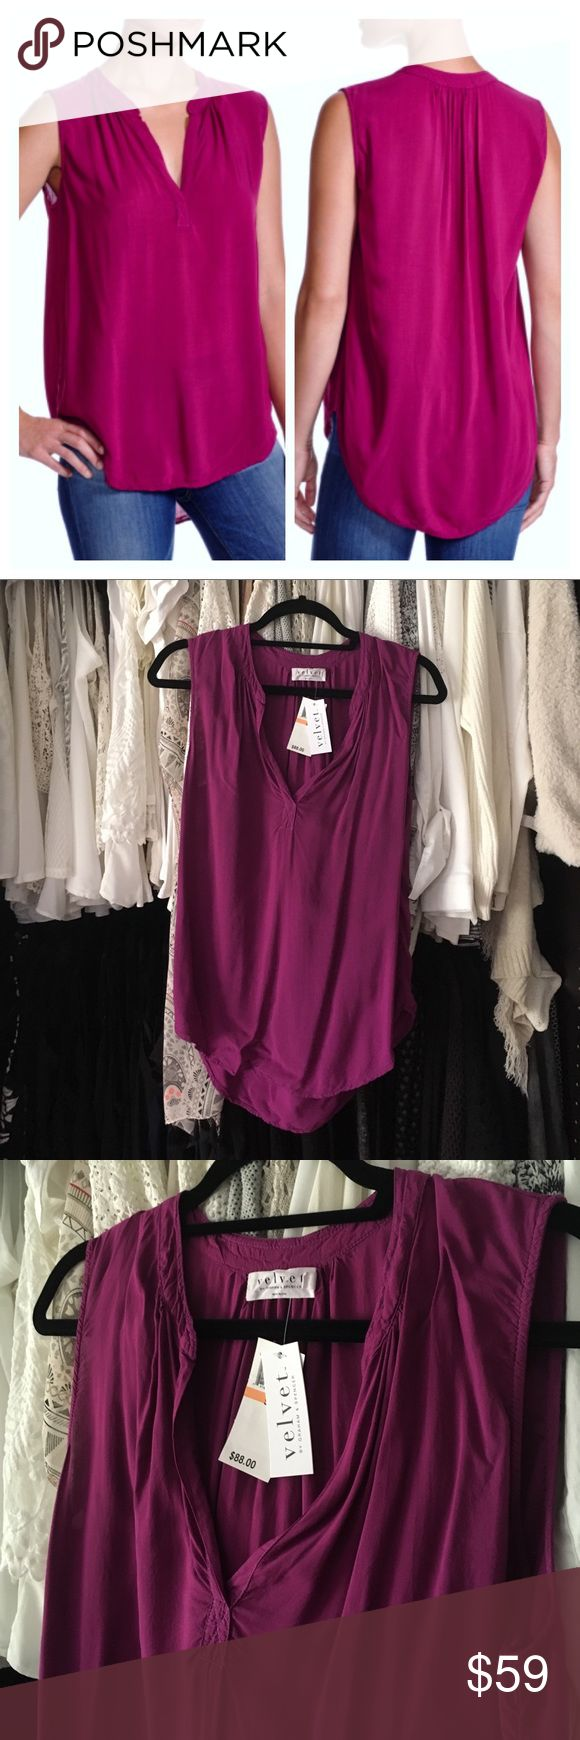 """Velvet by Graham and Spencer A soft and flowy tank that pairs with jeans, shorts, and skirts in a gorgeous magenta plum tone. 21"""" bust laying flat, 30"""" long at back- 27"""" at front.                                               ✅AVAILABLE ✅ LOWEST PRICE (w/o bundle) ✅ SAVE 20% 3+ ITEMS (@checkout) 🚫TRADES 🚫HOLDS 🆓 ITEMS  AVAILABLE  🐾 CRUELTY FREE 📦 SHIP 2X/ Wk Velvet by Graham & Spencer Tops Tank Tops"""